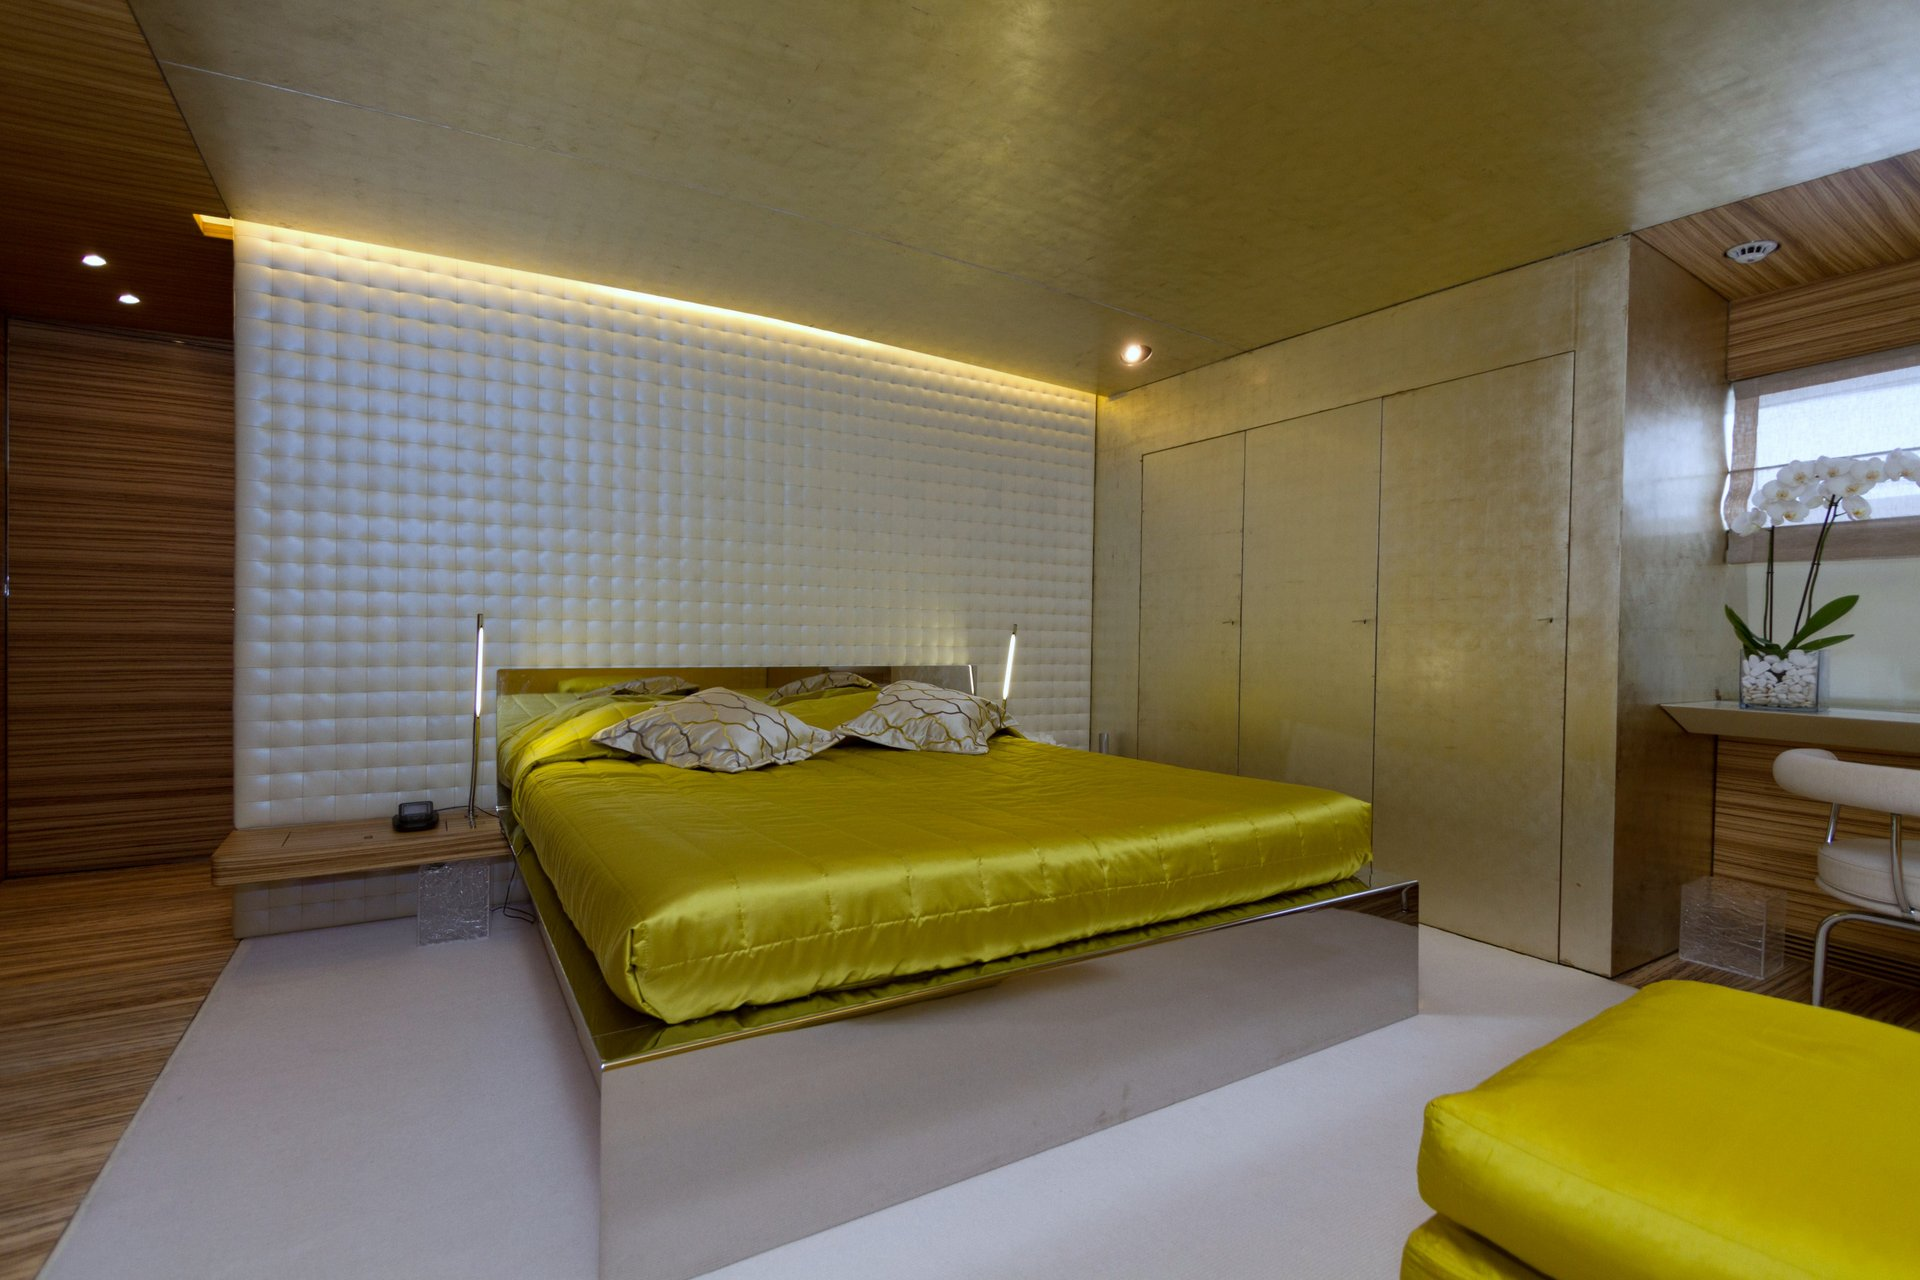 M/Y MABROUK yacht for charter master bedroom